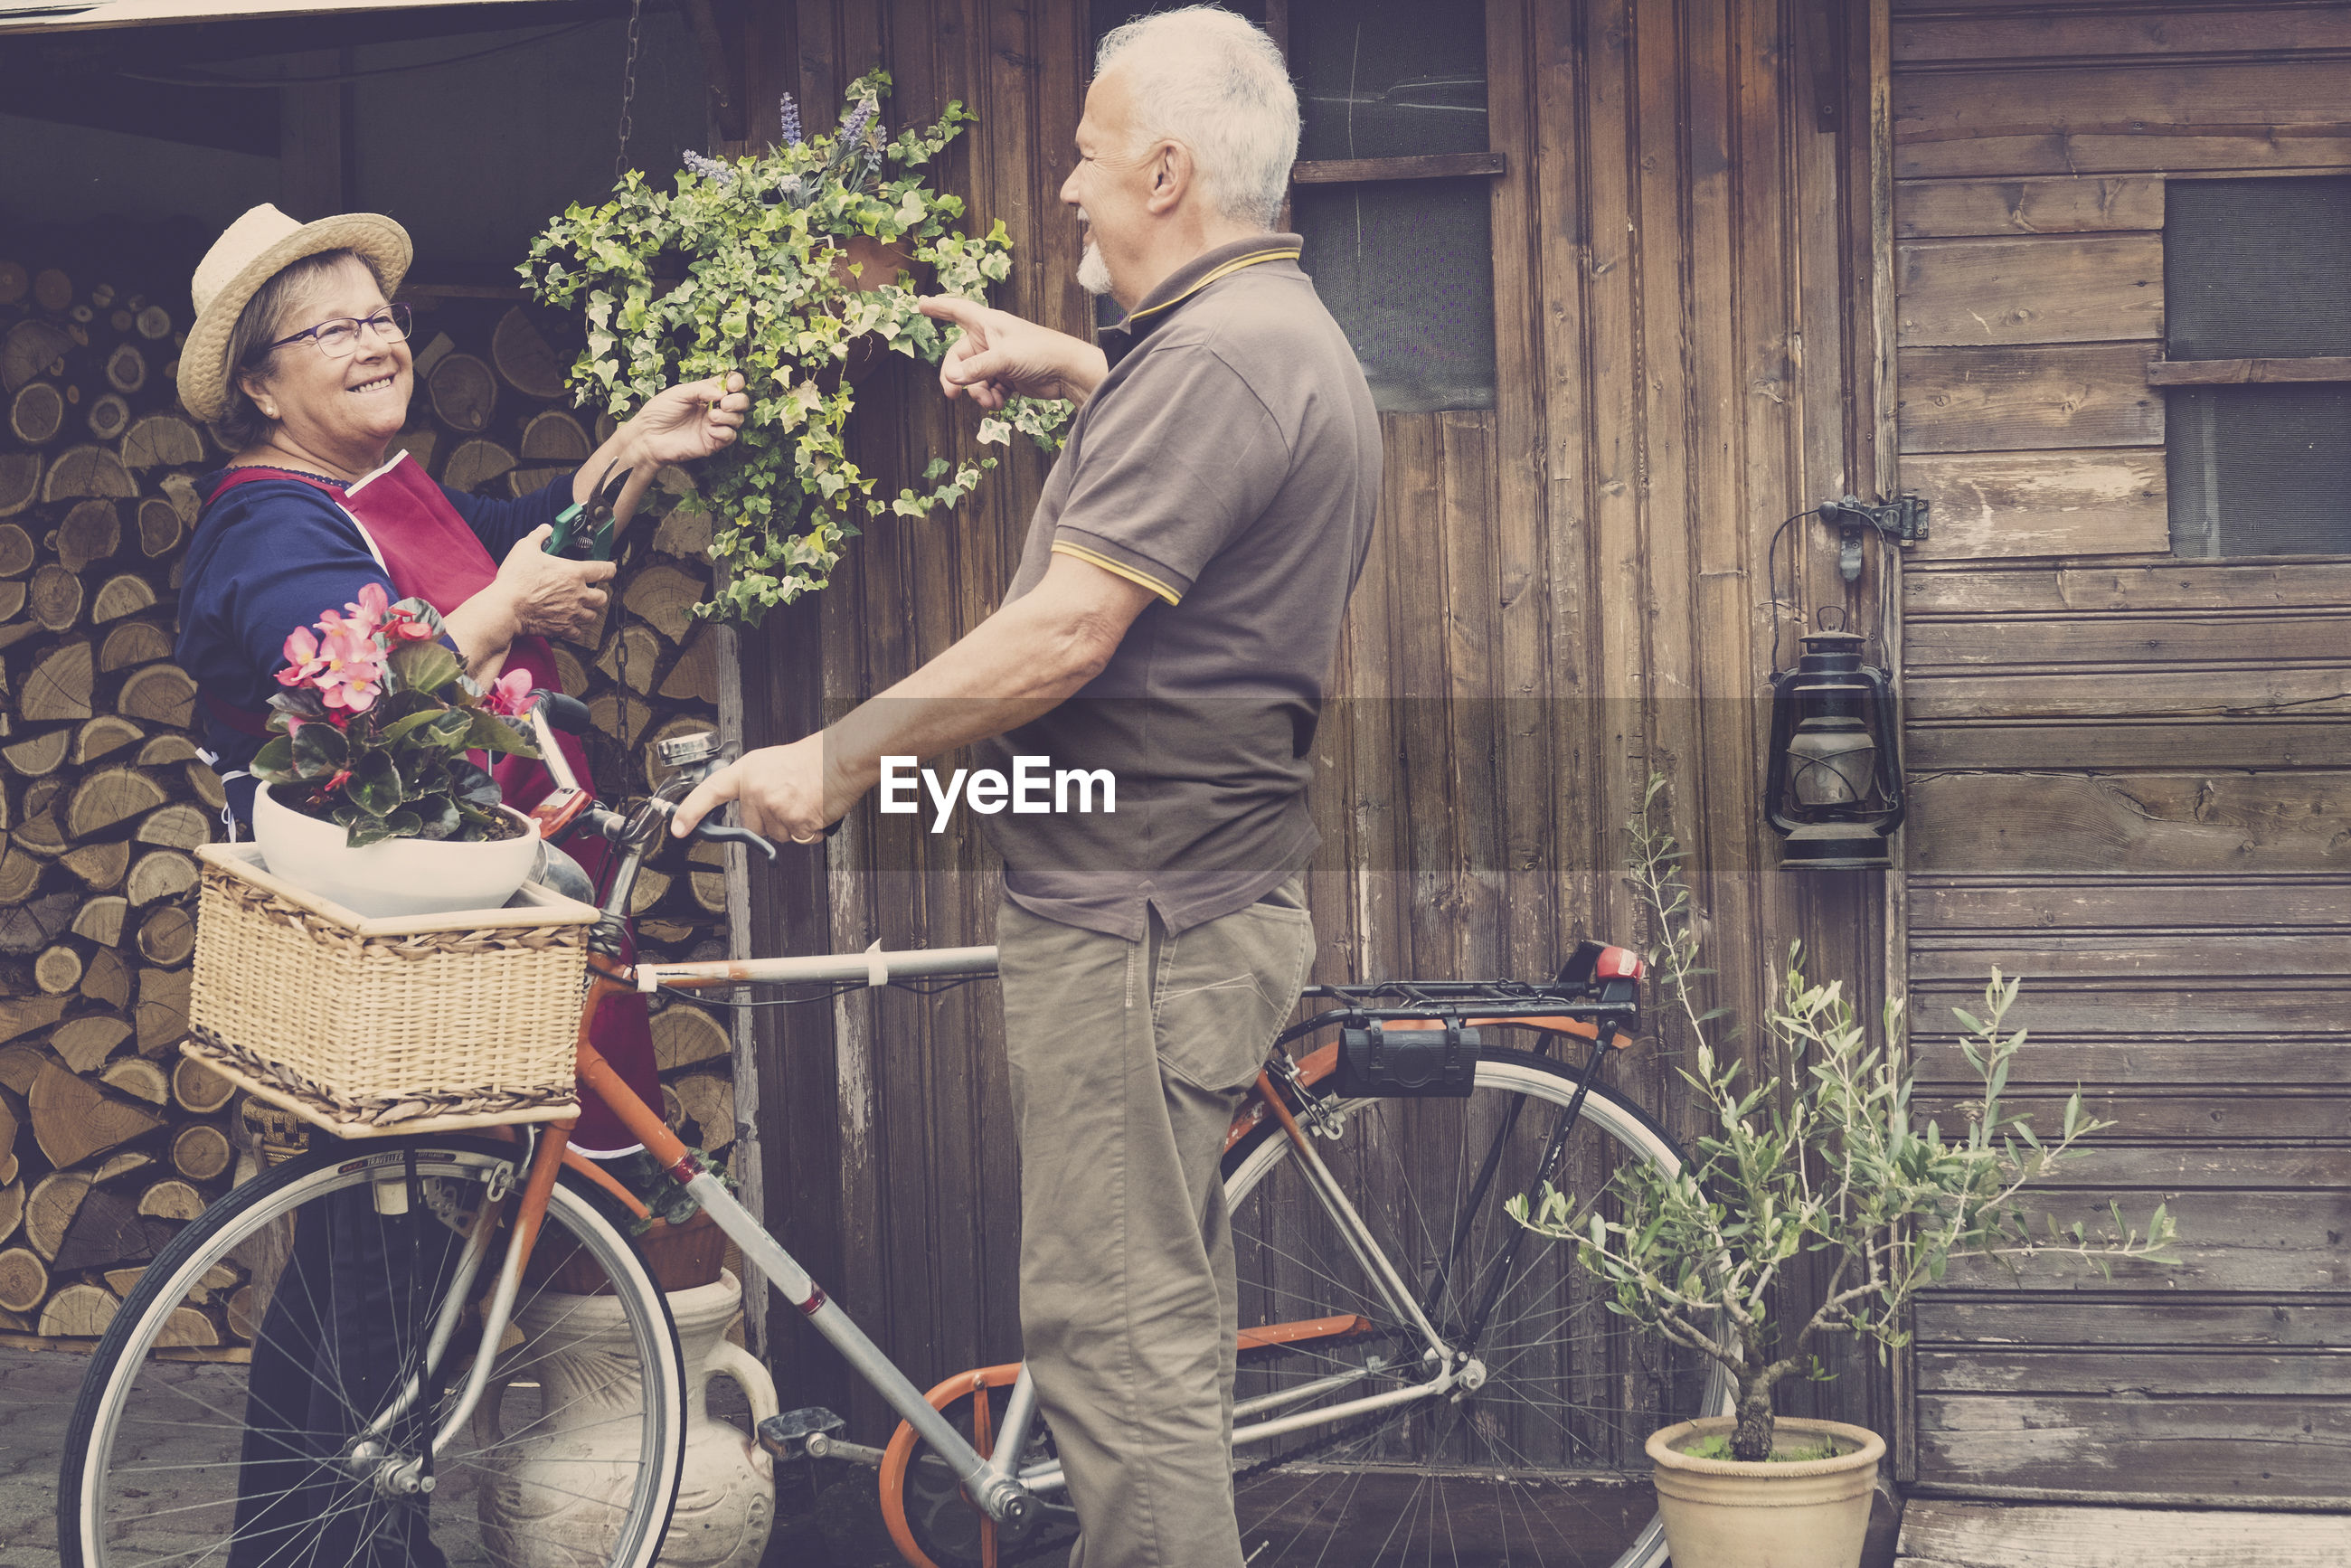 Senior couple standing with potted plant in bicycle basket against house